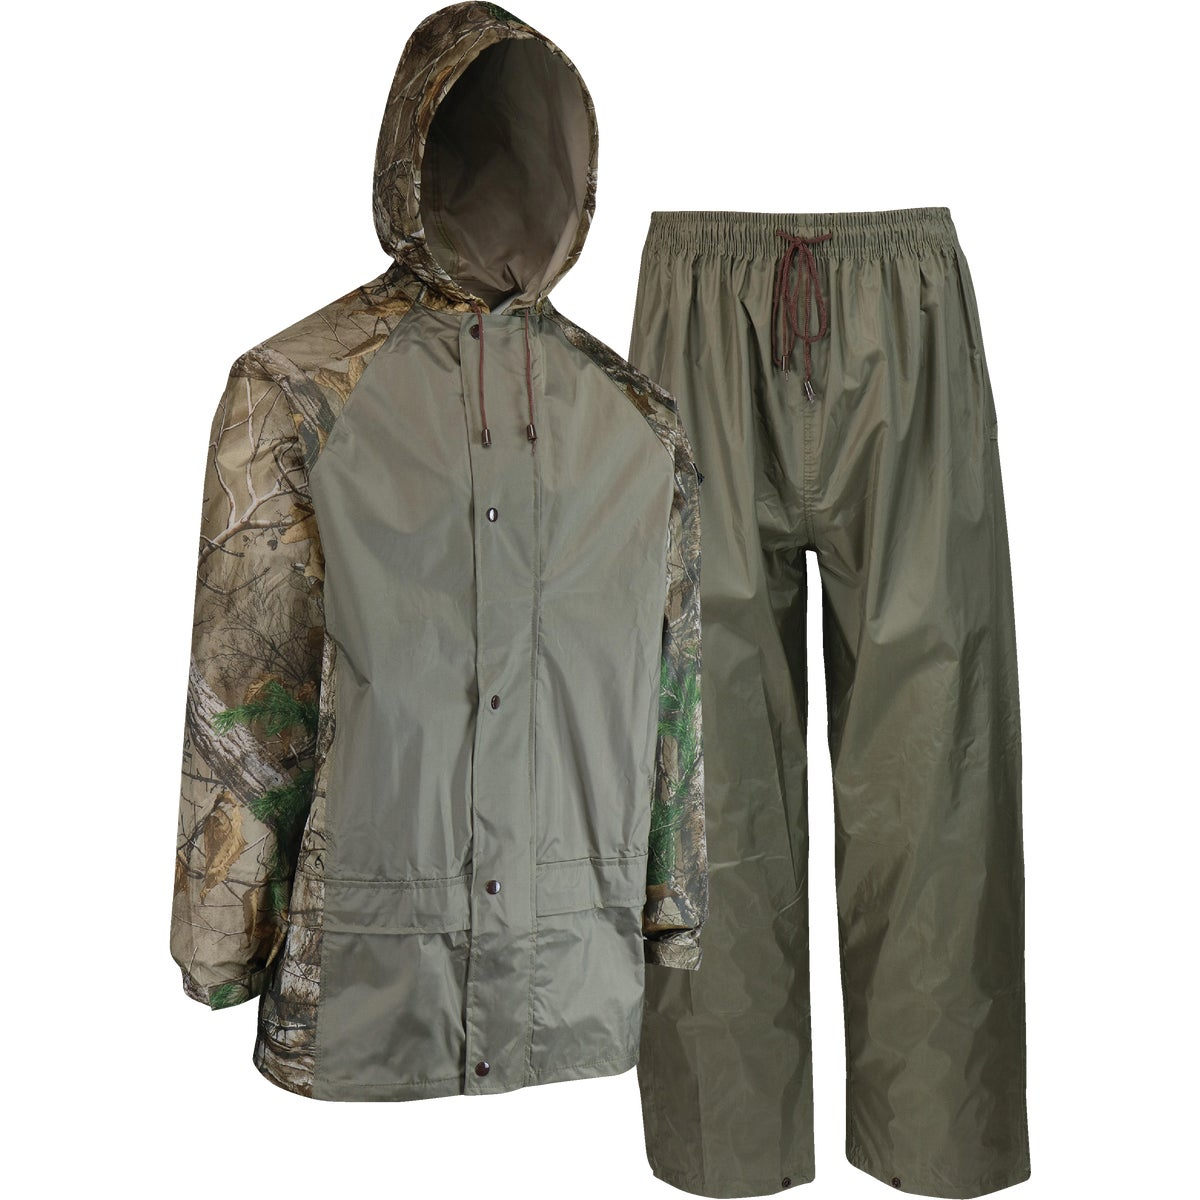 XL 2PC CAMO RAIN SUIT - R180X by Custom Leathercraft